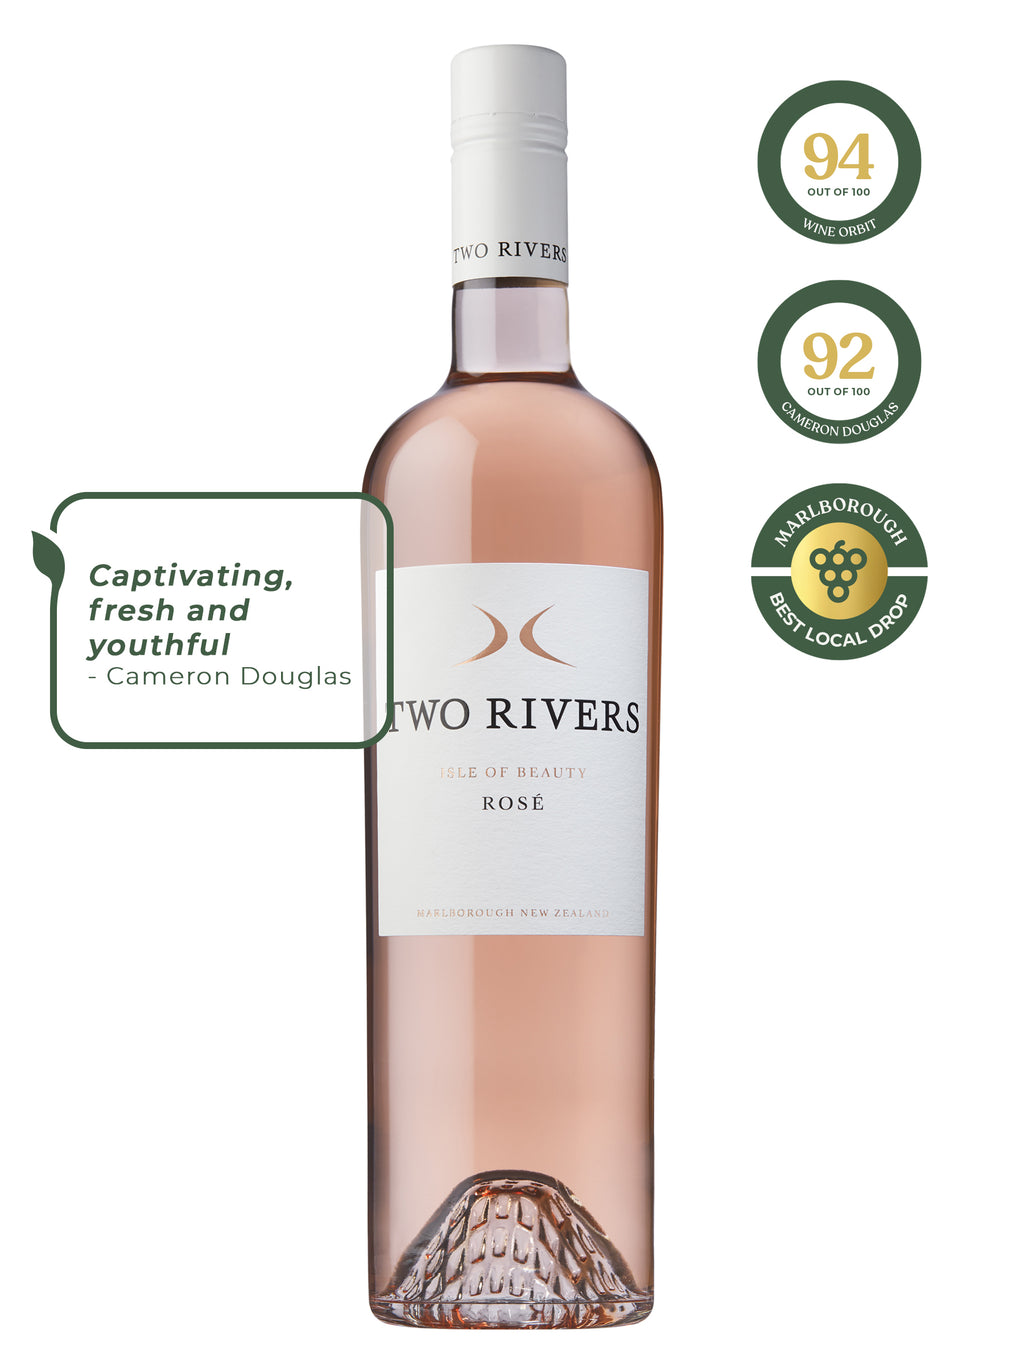 Two Rivers Rose, Isle of Beauty, Marlborough Rose, Marlborough Wine, New Zealand Wine, Online Wine Shop, New Zealand Wine Shop, New Zealand Wine Events, Auckland Wine Events, Winetopia, Auckland Wine , Auckland Restaurant Month